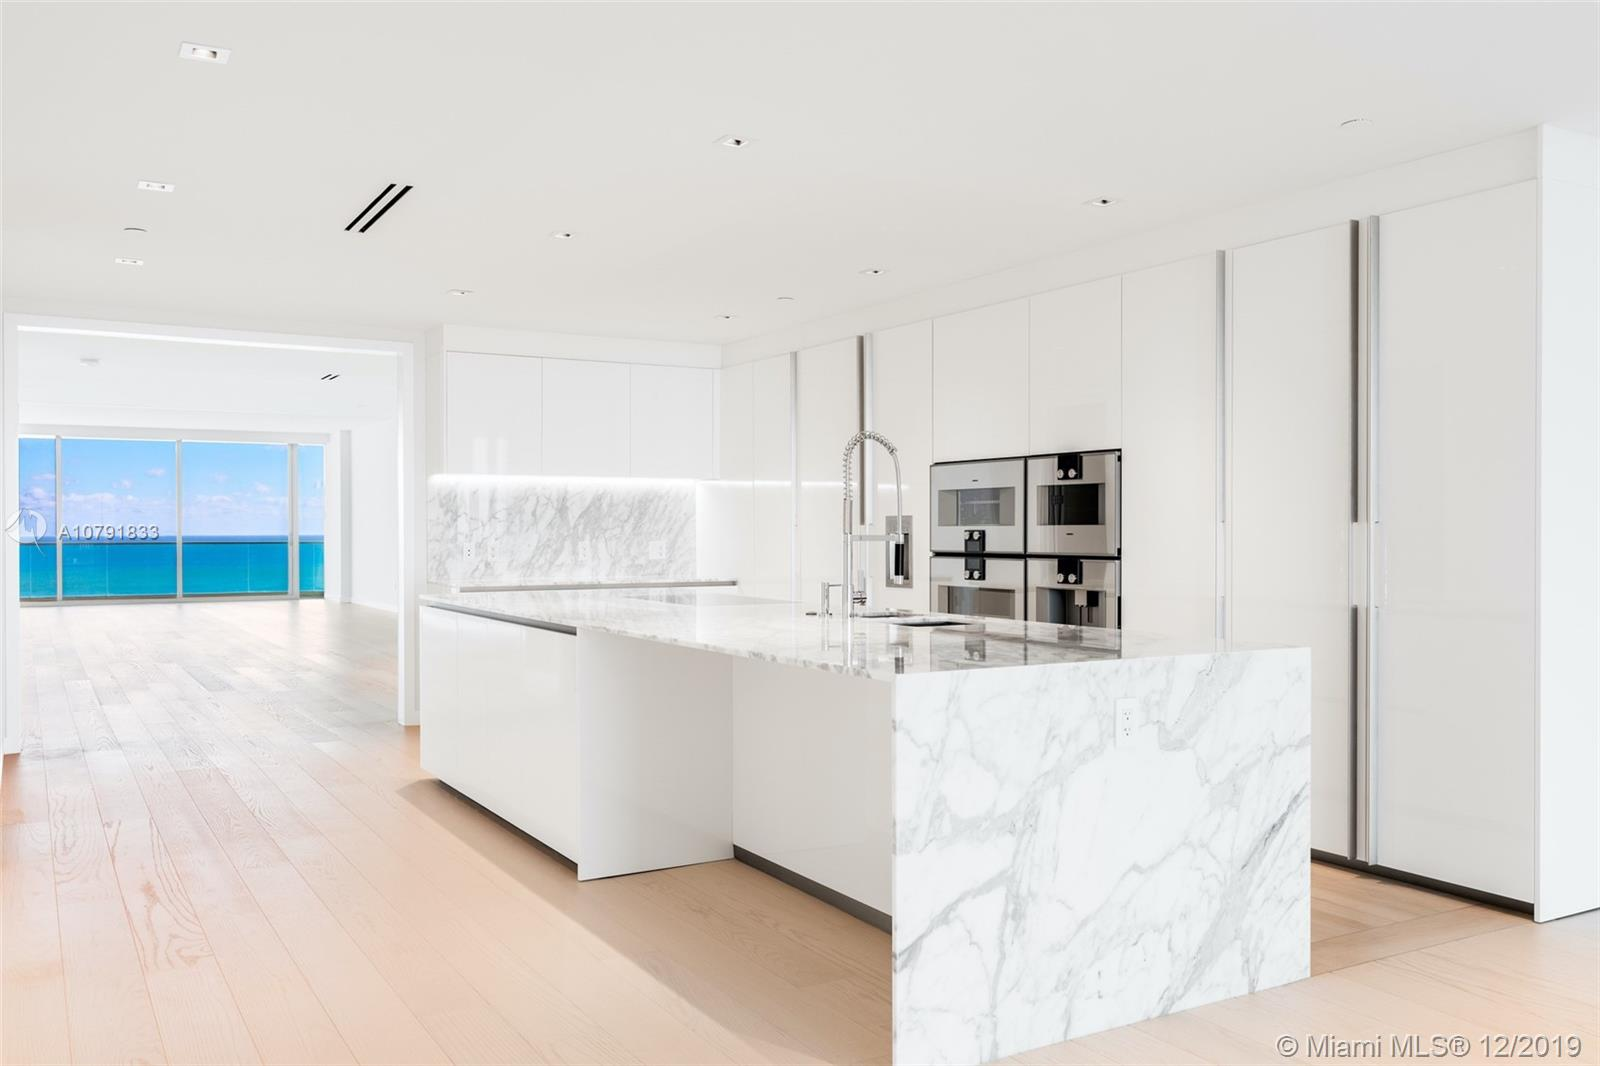 10203 Collins Ave, Unit #1602 Luxury Real Estate